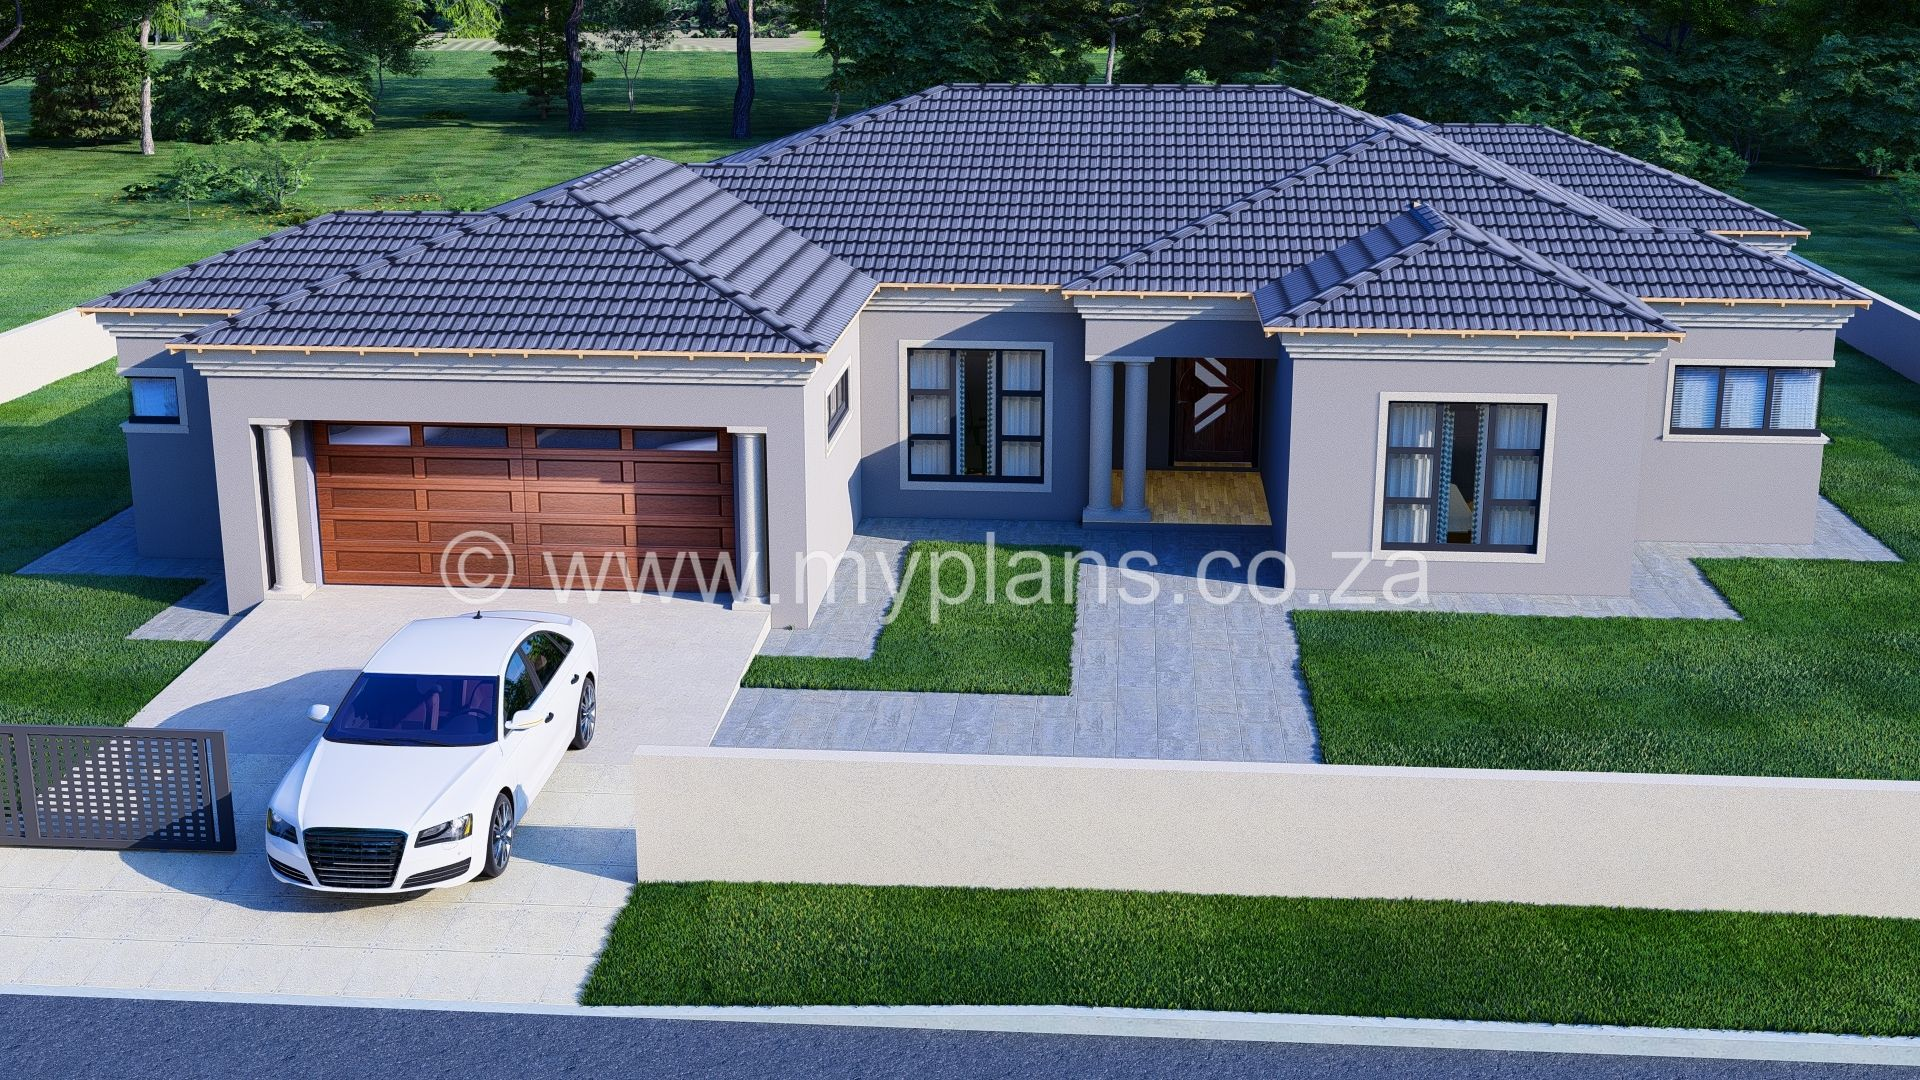 3 Bedroom House Plan Mlb 069s Free House Plans My House Plans House Plans South Africa